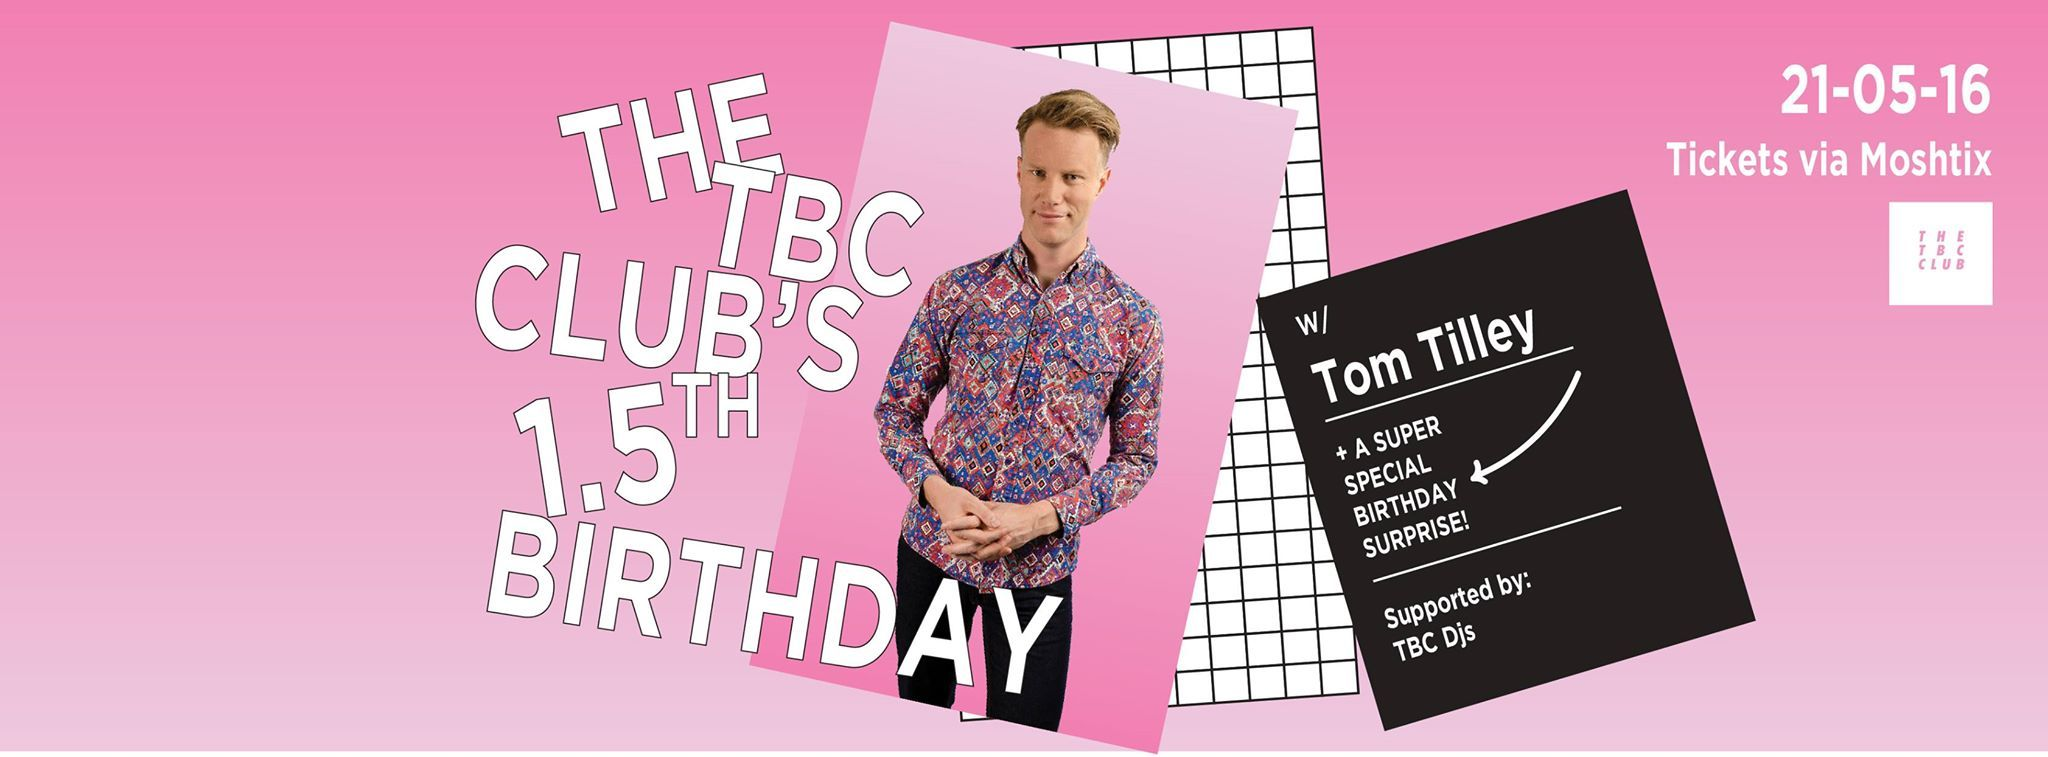 THE BOWLER CLUB SUPER SPECIAL 1.5TH BIRTHDAY - TOM TILLEY & SUPER ...